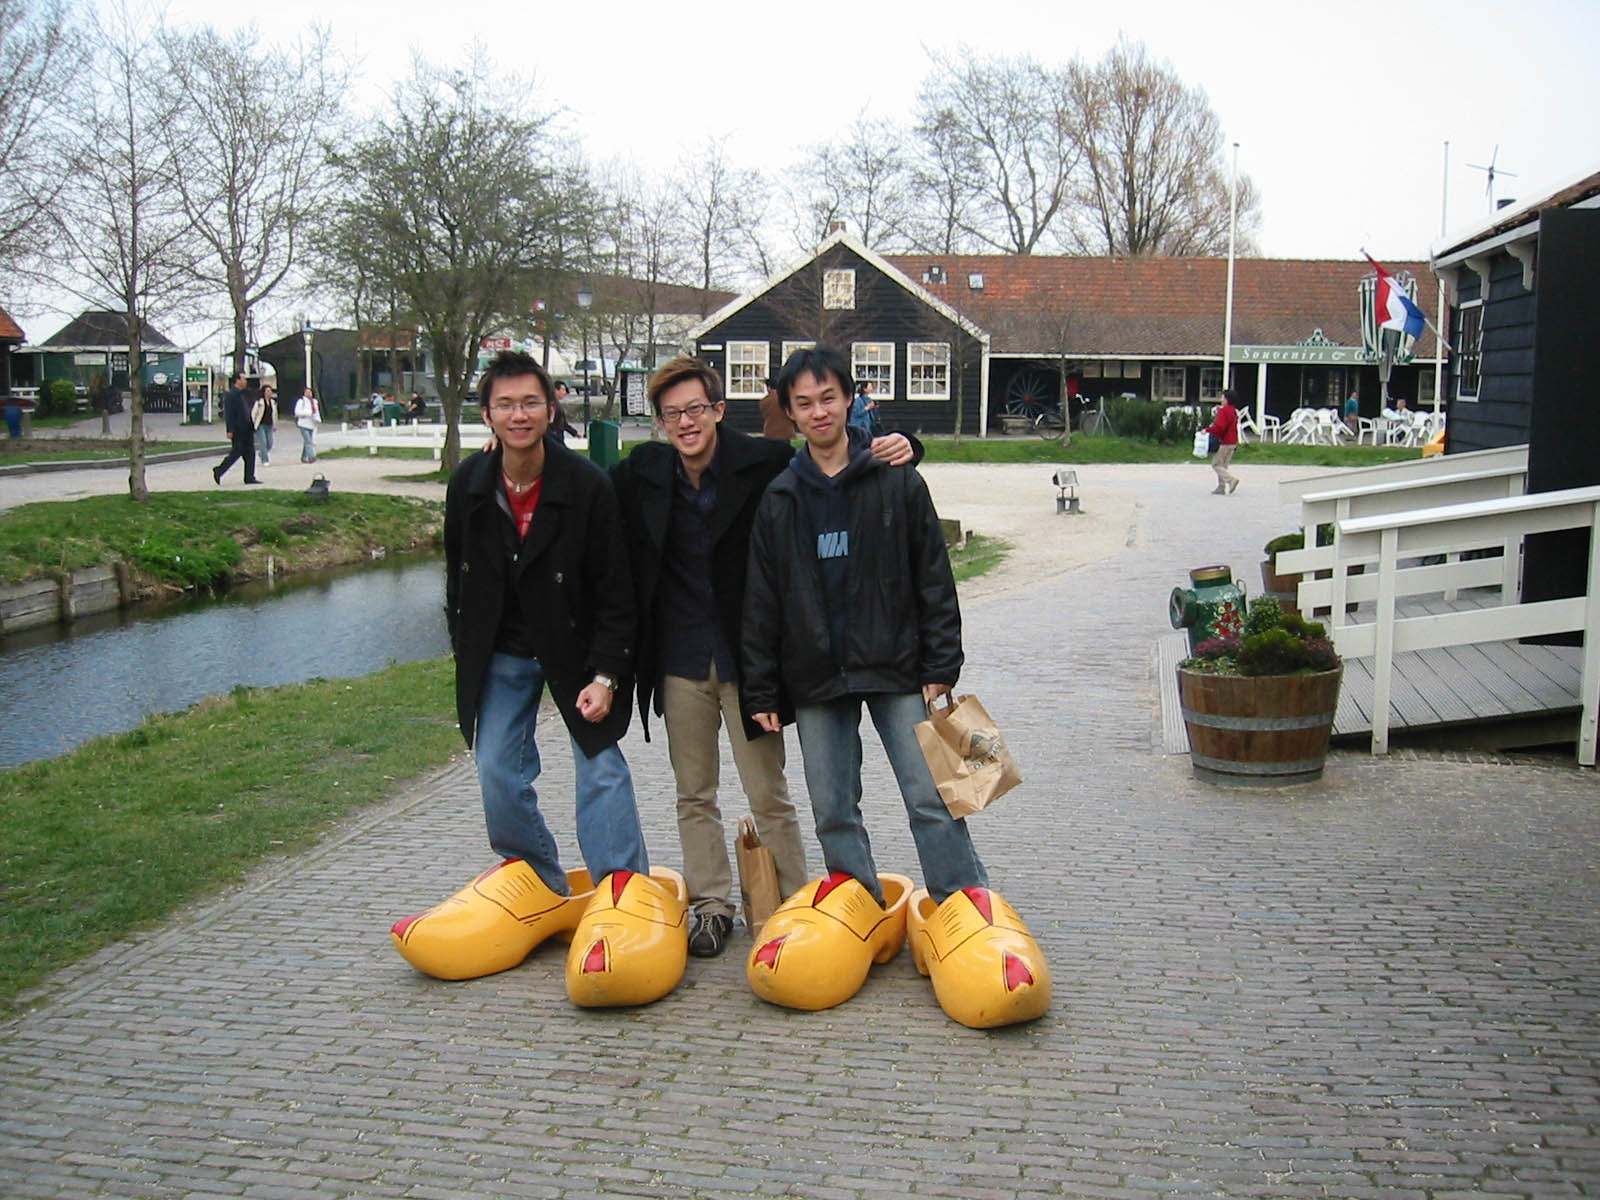 funny clogs traditional holand 10 Funny Clogs the Traditional Holand Footwear